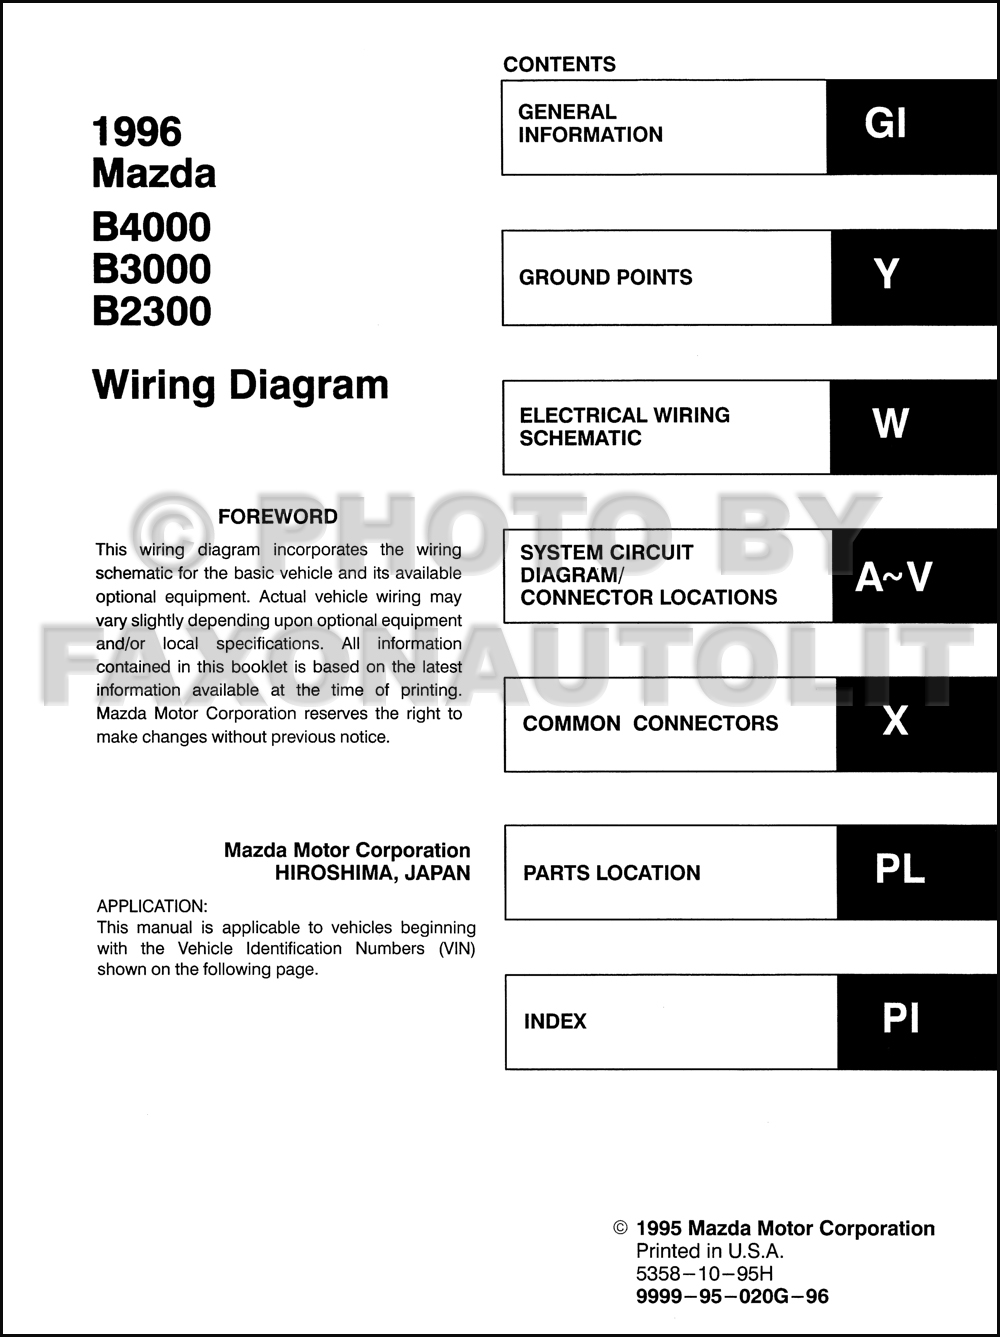 1994 Mazda B3000 Fuse Diagram Wiring Diagrams Schematics 94 Aerostar Box Images Gallery